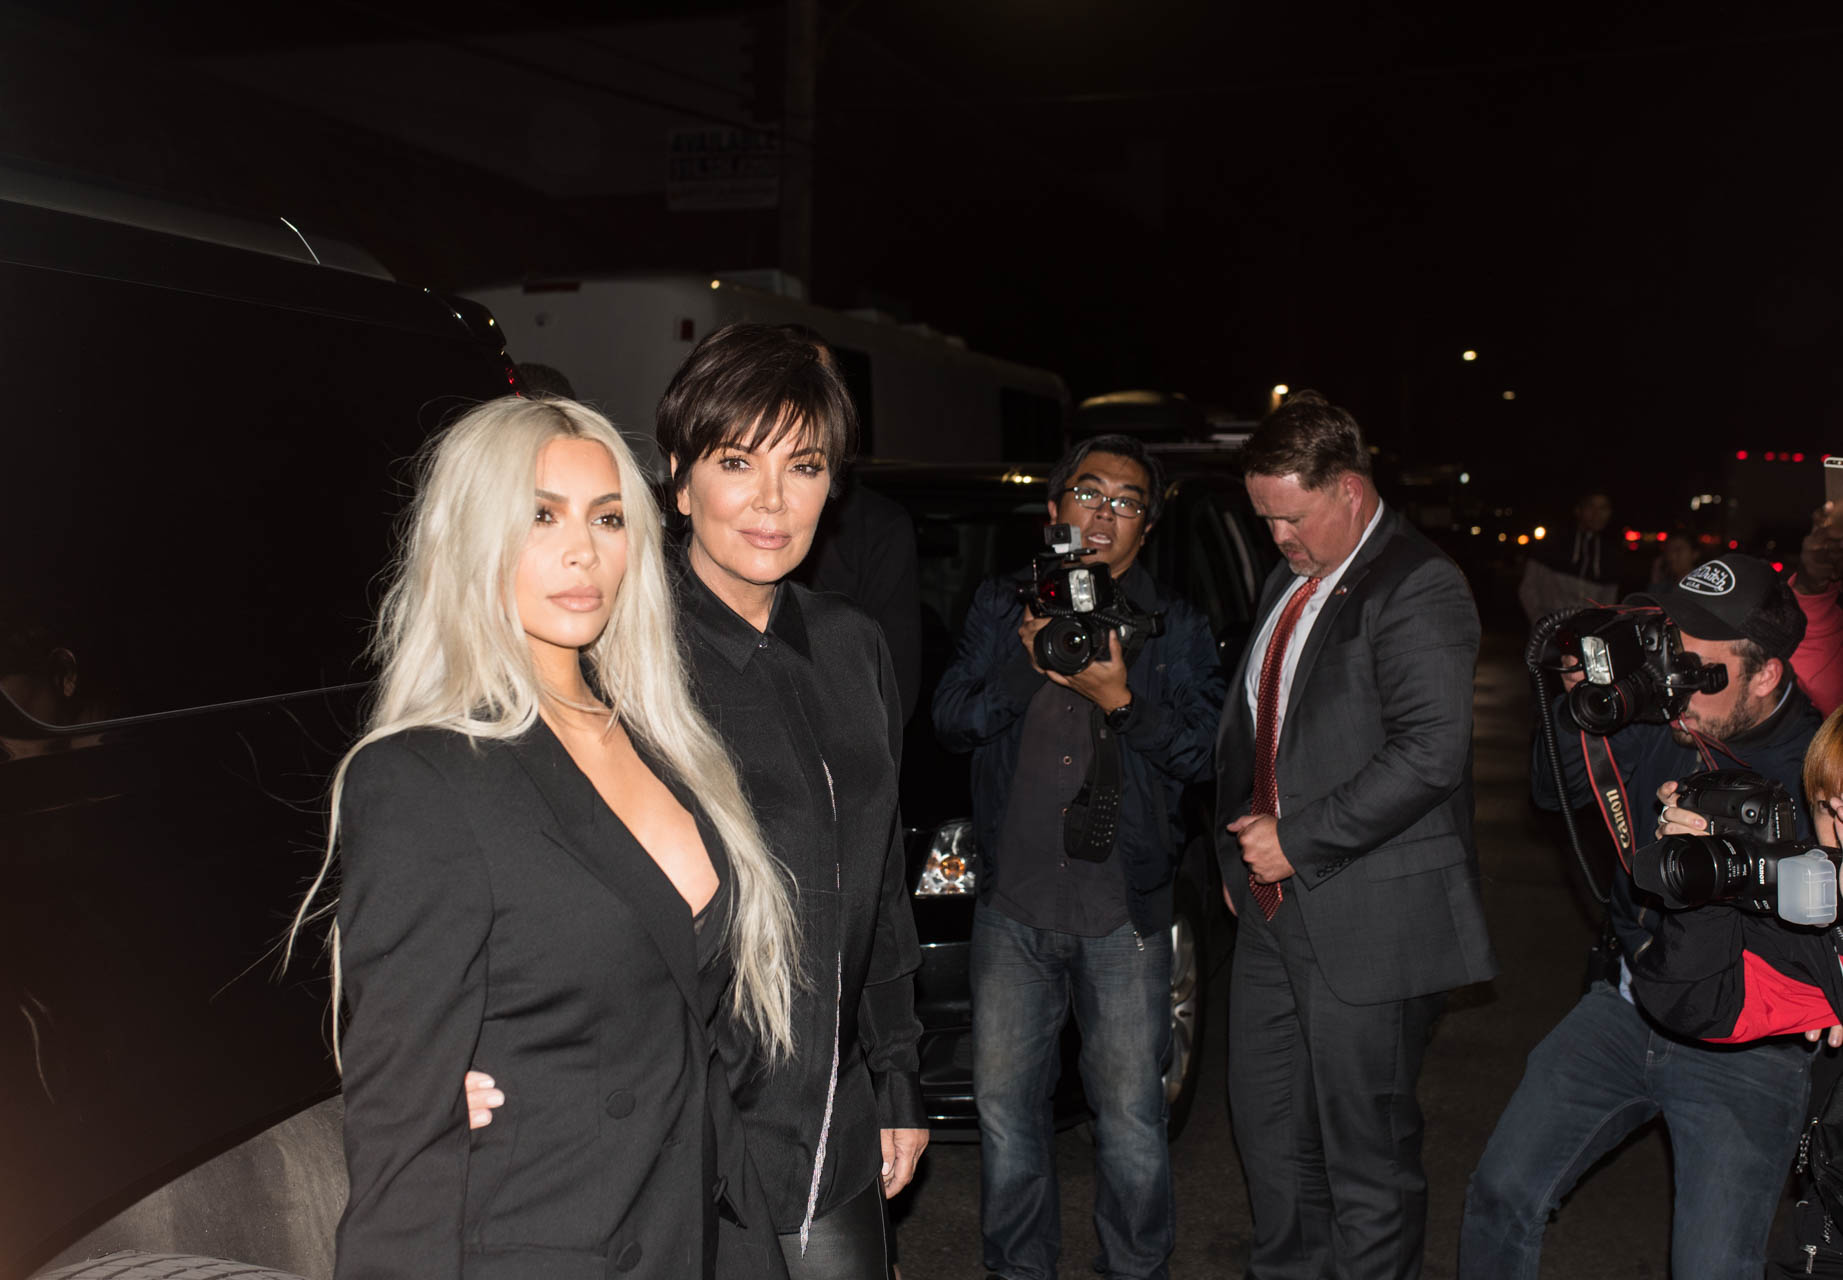 Kim Kardashian West and Kris Jenner at Alexander Wang's NYFW runway show